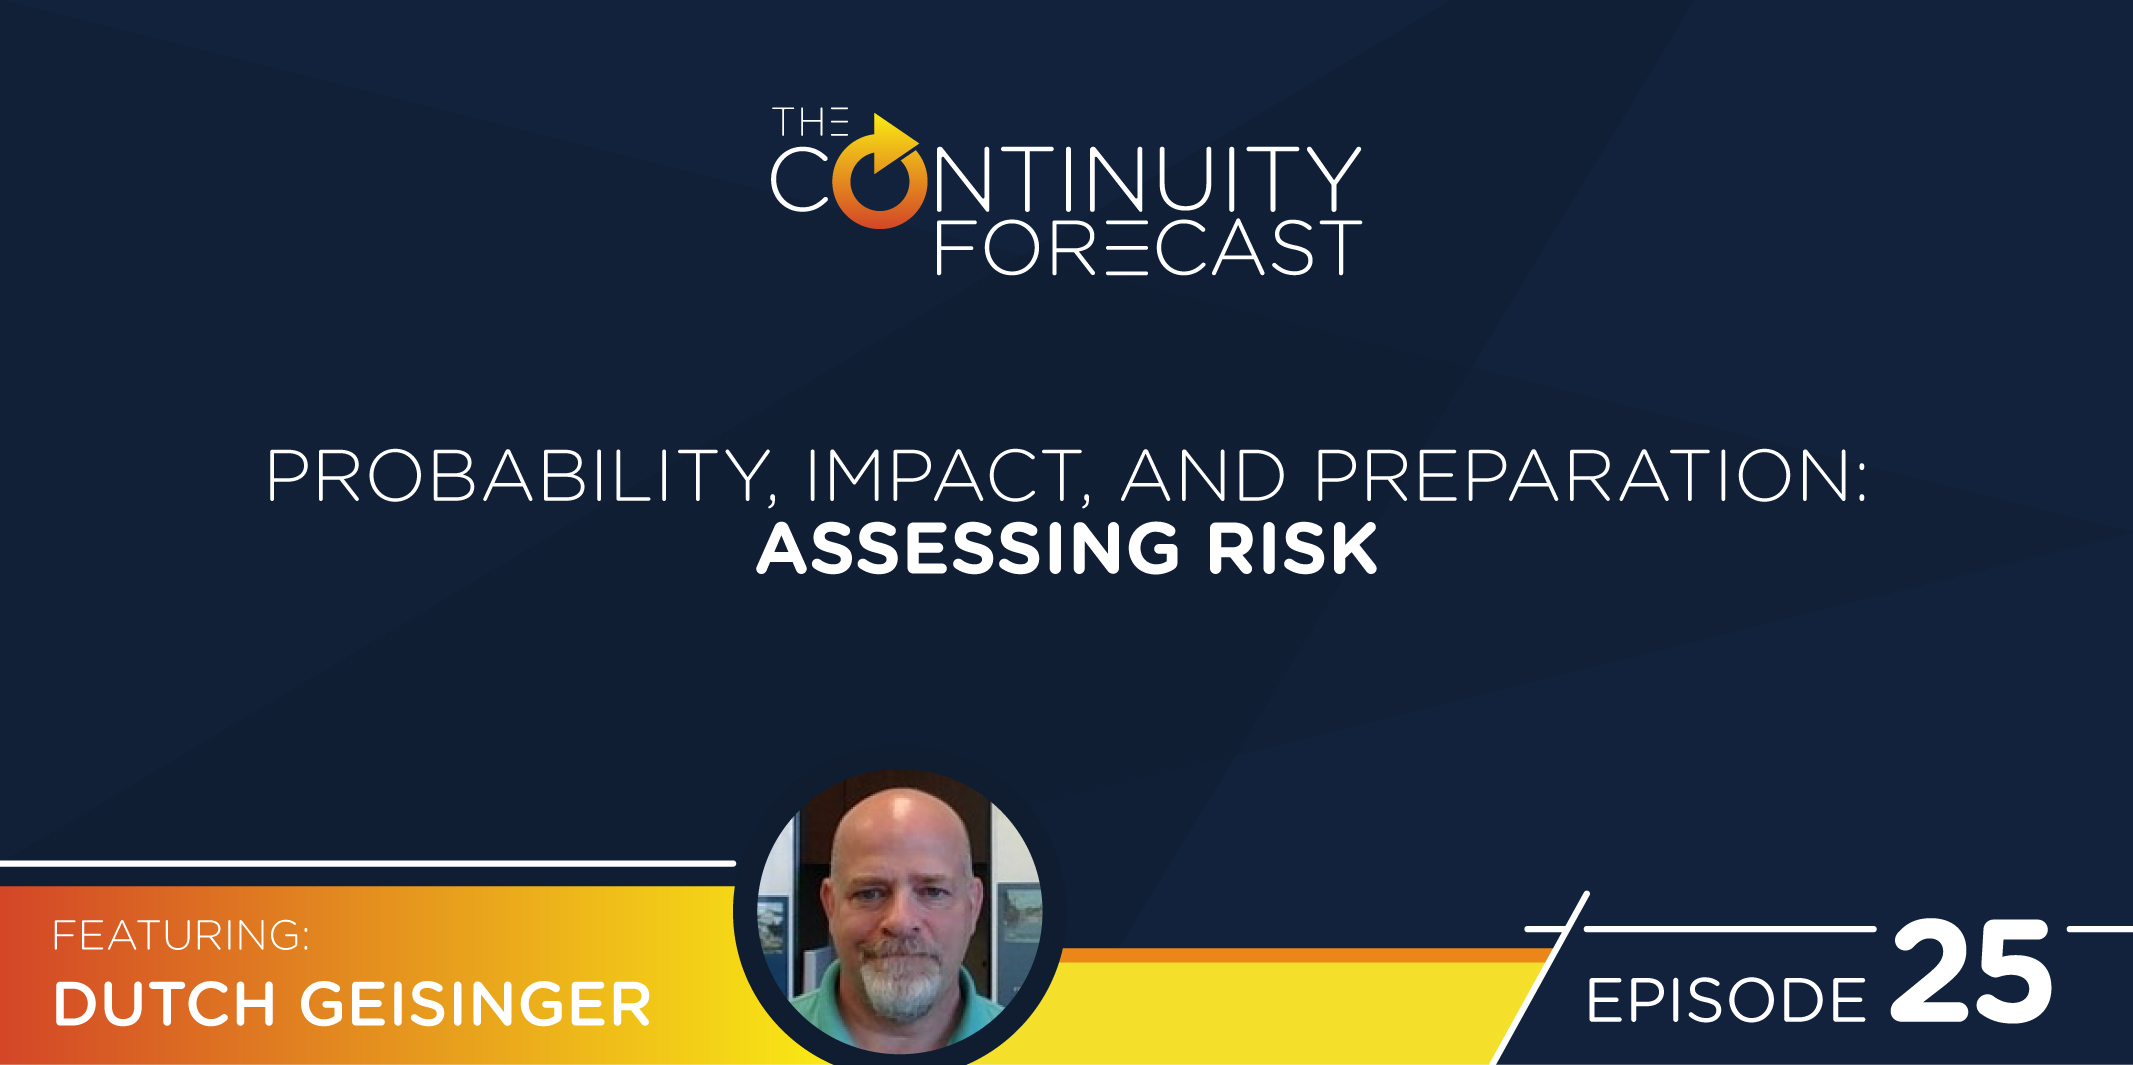 Dutch Feisinger was our latest guest on our business continuity and risk management focused podcast: The Continuity Forecast